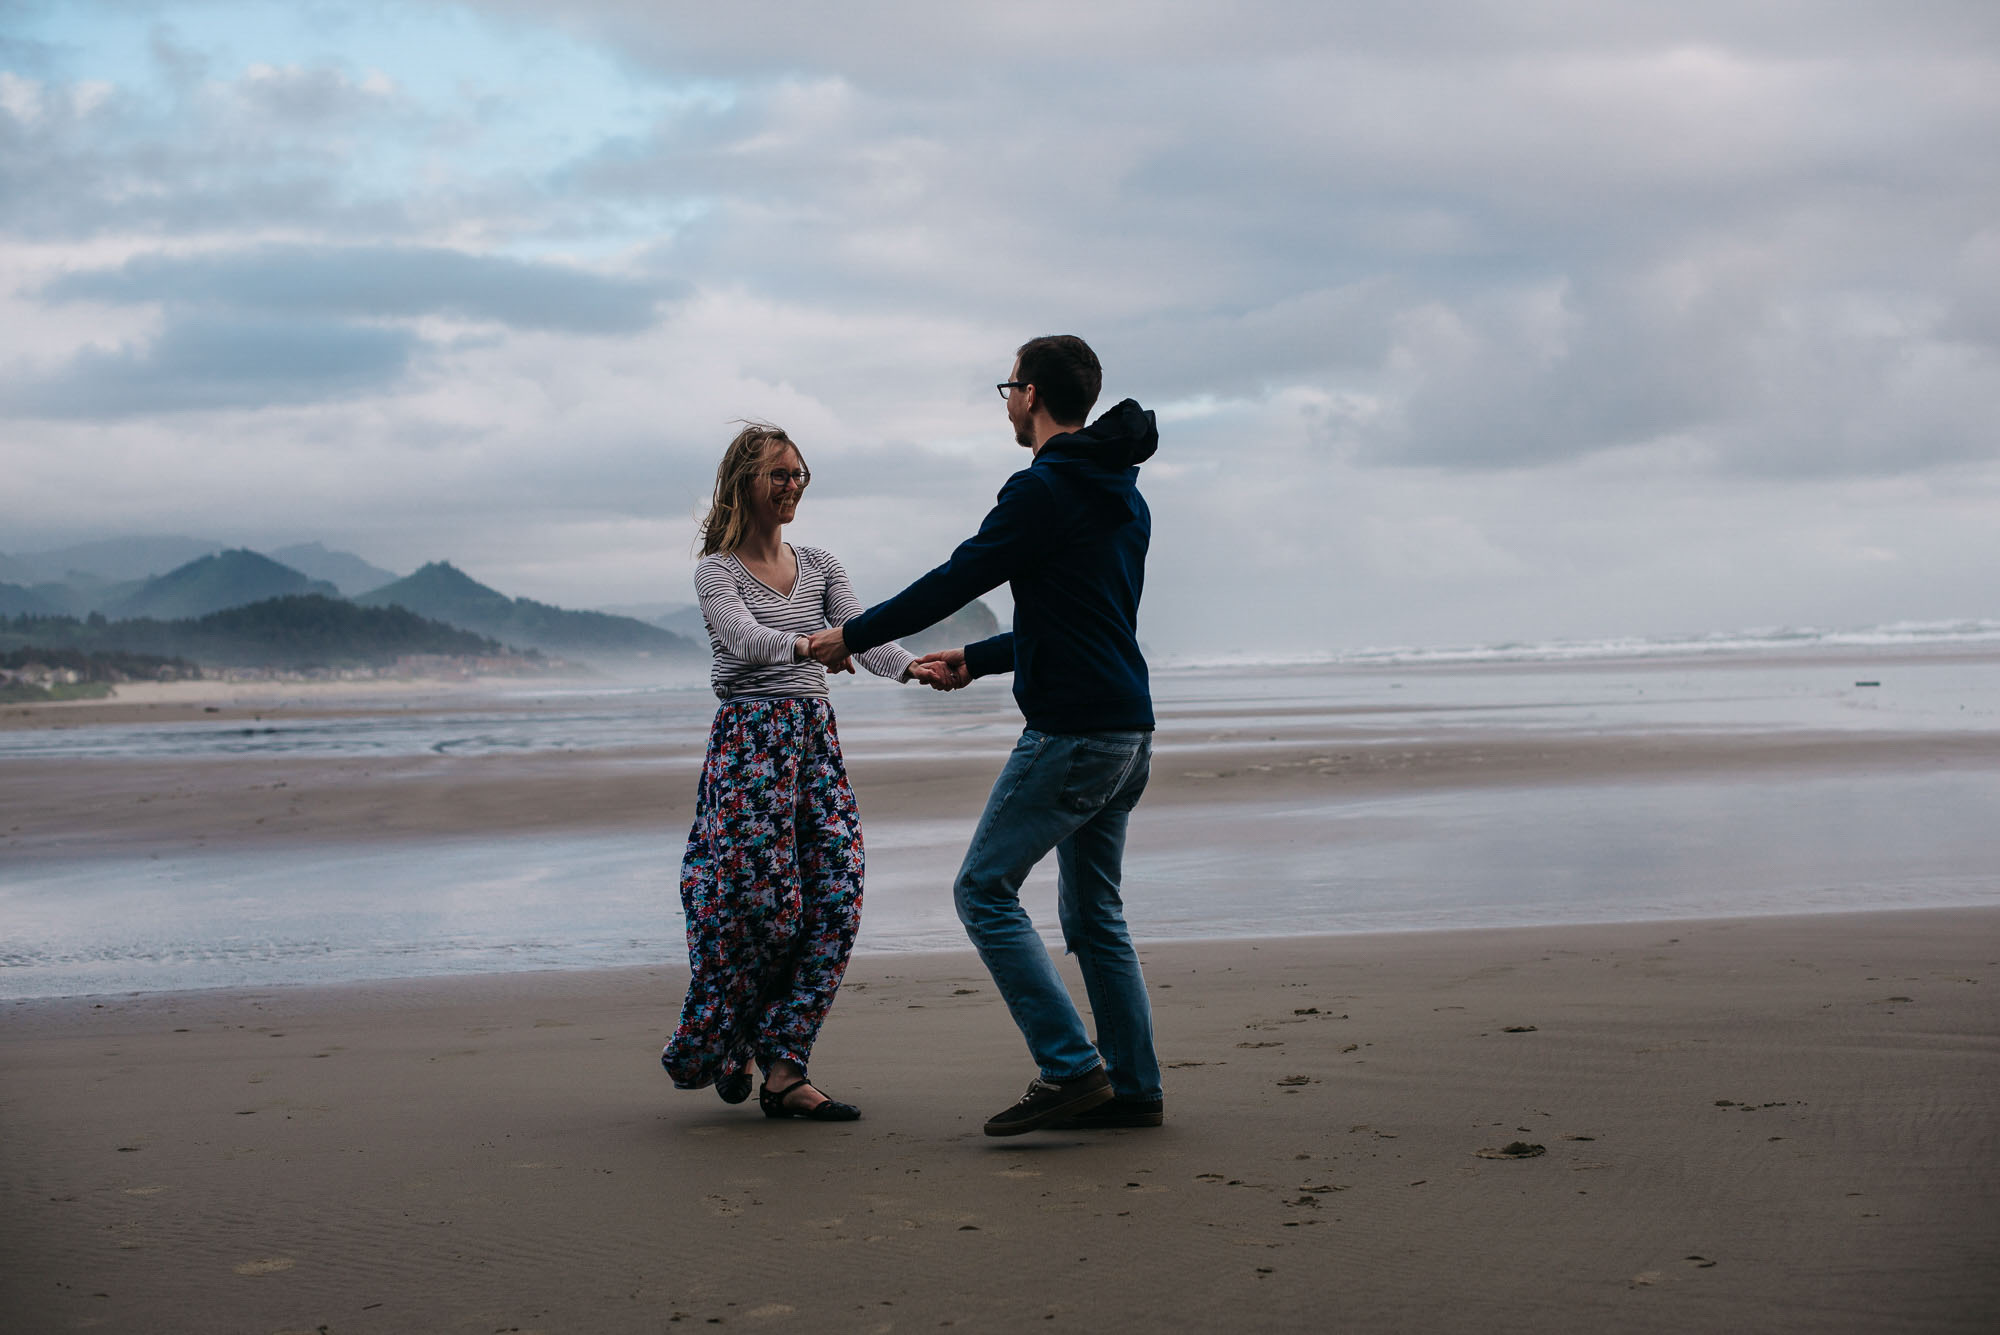 32-emmy-searching-for-the-light-photography-colorado-photographer-elopement-photographer-dance-photographer-couple-photographer_Cannon-Beach_PNW_photographer_portland-possible-trip-2016-2219-2.jpg